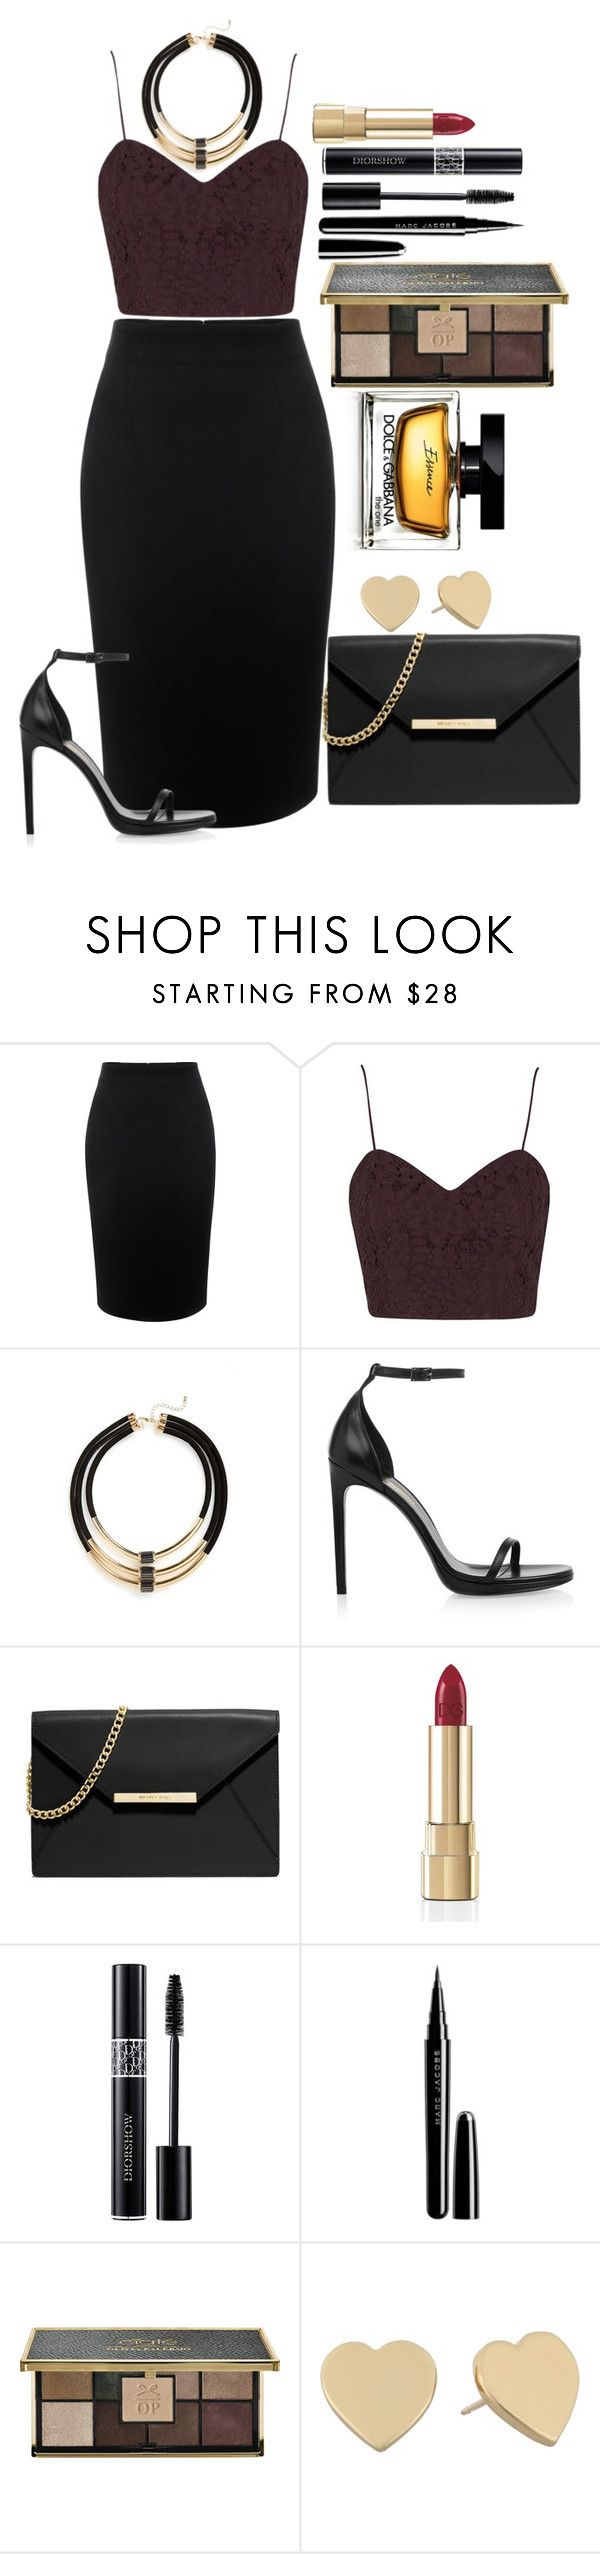 """Untitled #1288"" by fabianarveloc on Polyvore featuring Alexander McQueen, Topshop, Yves Saint Laurent, MICHAEL Michael Kors, Dolce&Gabbana, Christian Dior, Marc Jacobs, Ciaté and Kate Spade"